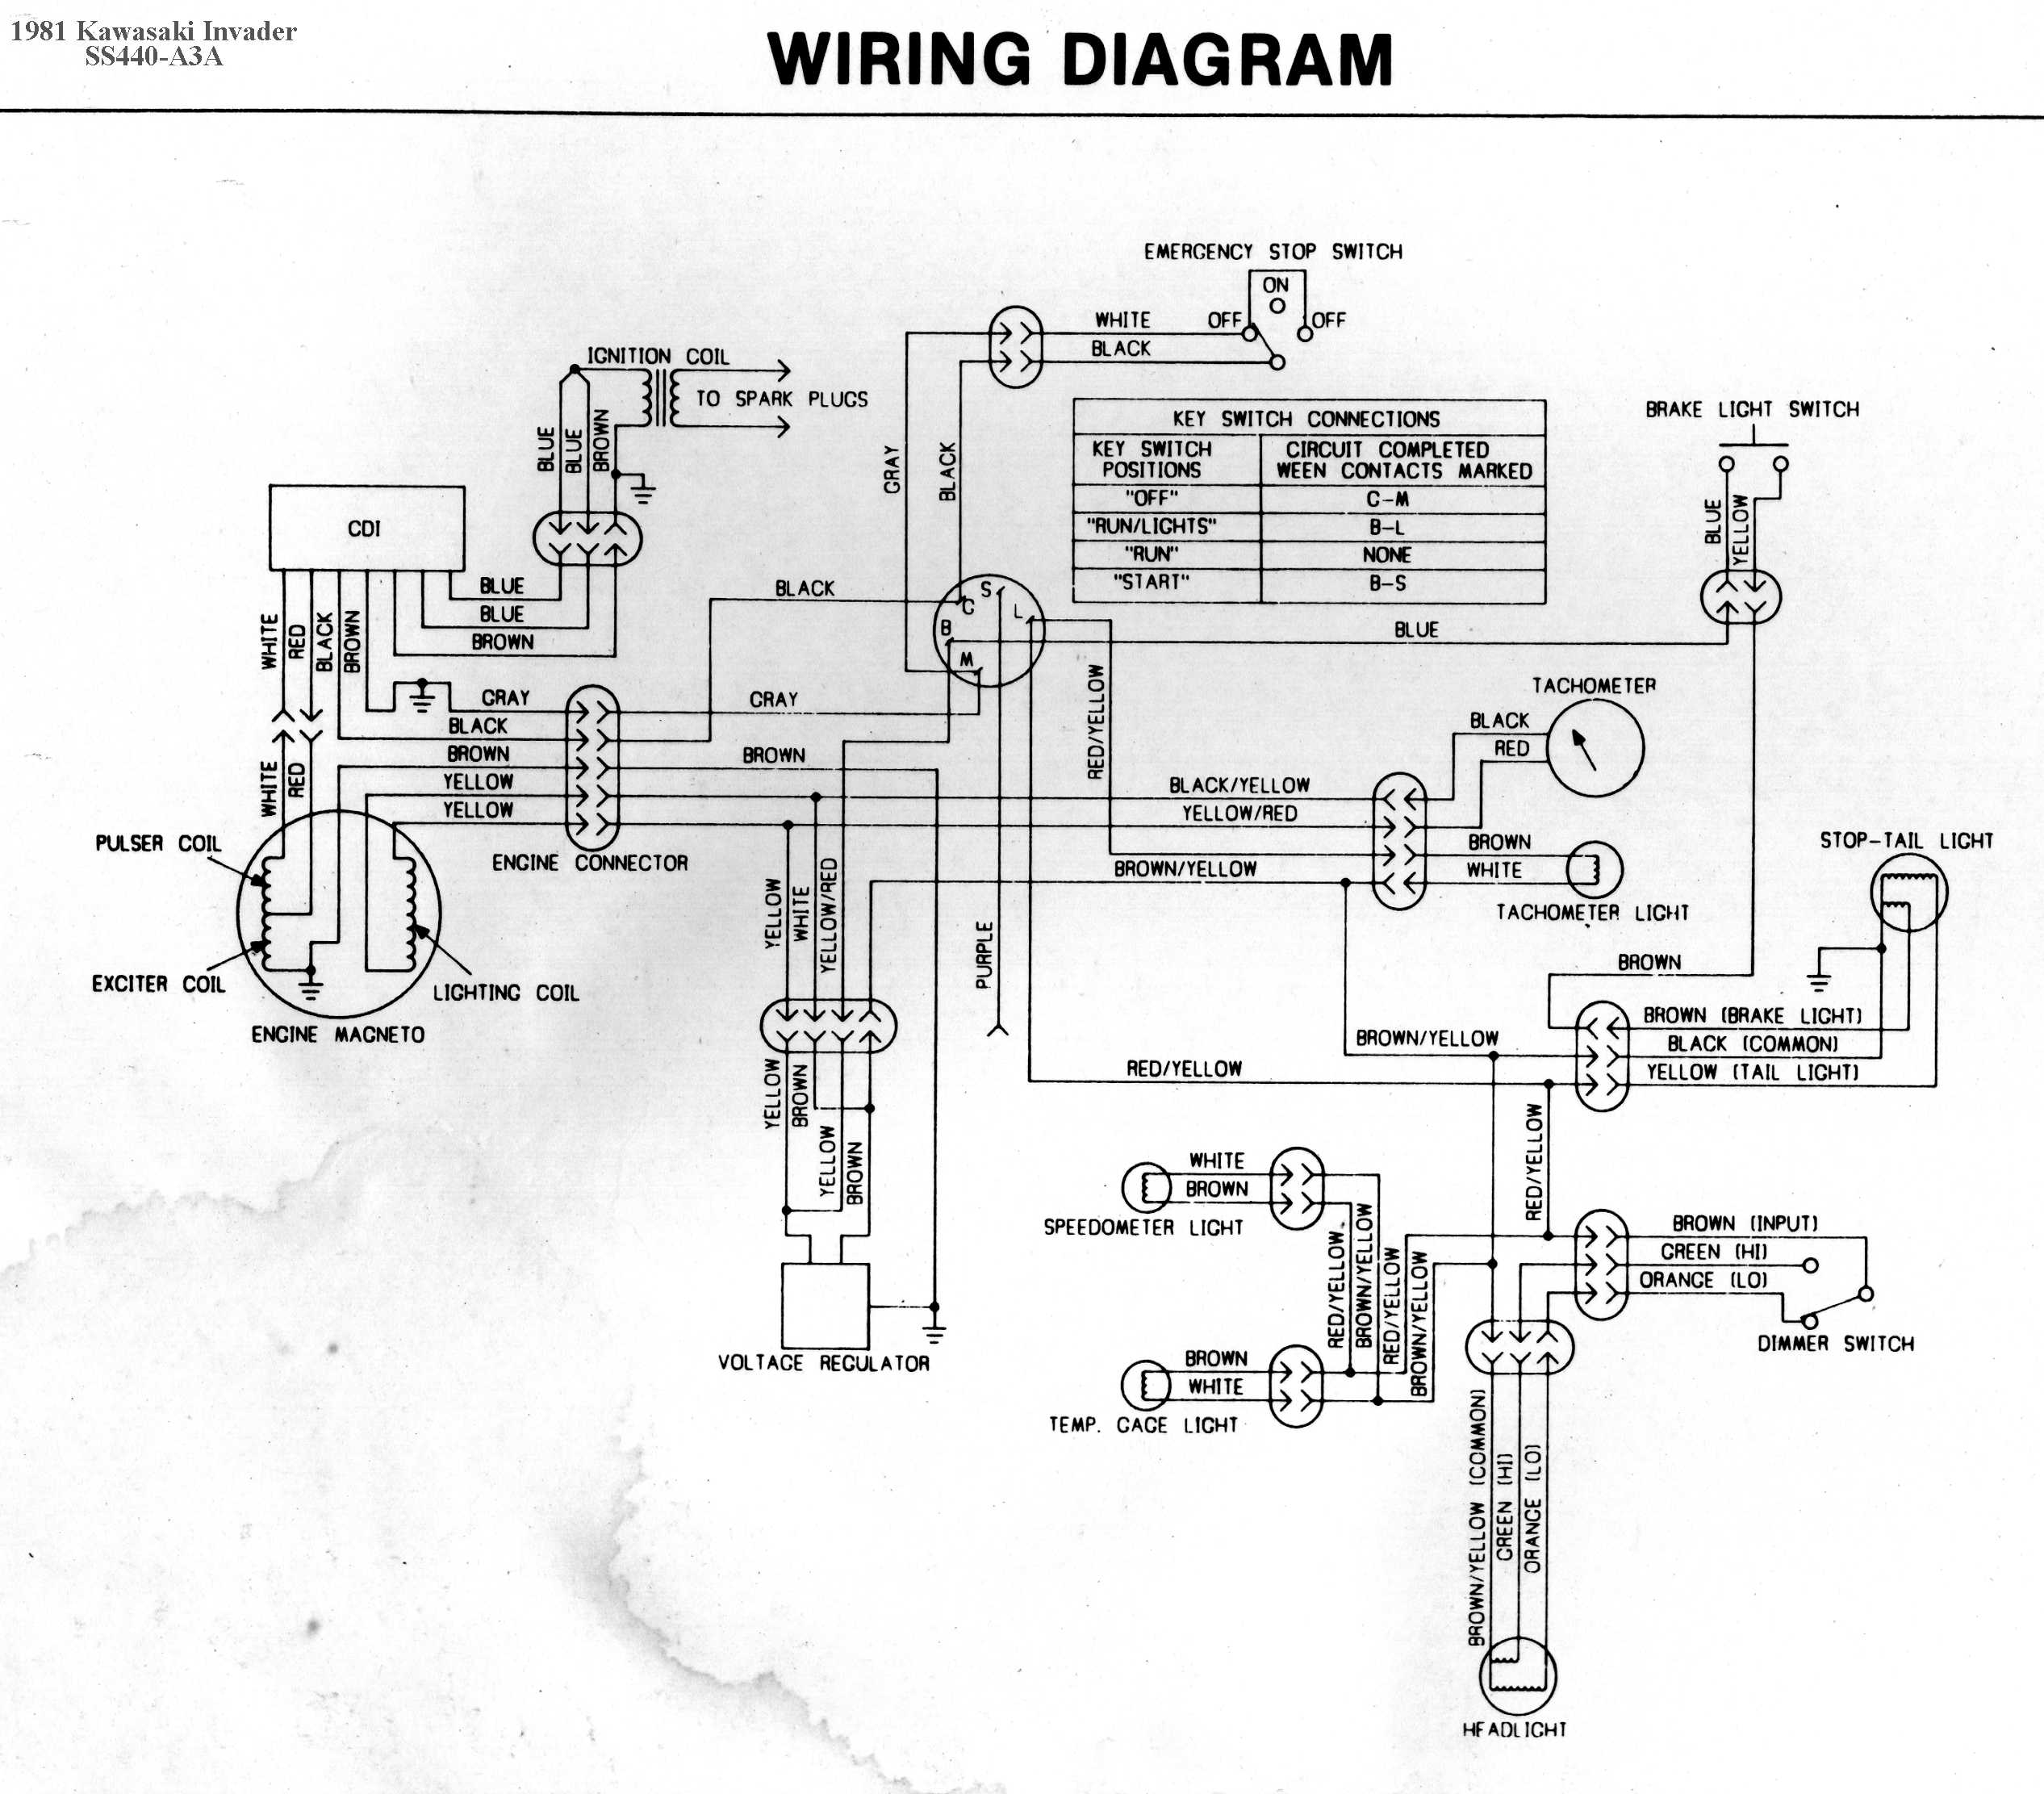 snowmobile wire diagram wiring diagram rh blaknwyt co 1989 yamaha phazer wiring diagram yamaha phazer 480 wiring diagram